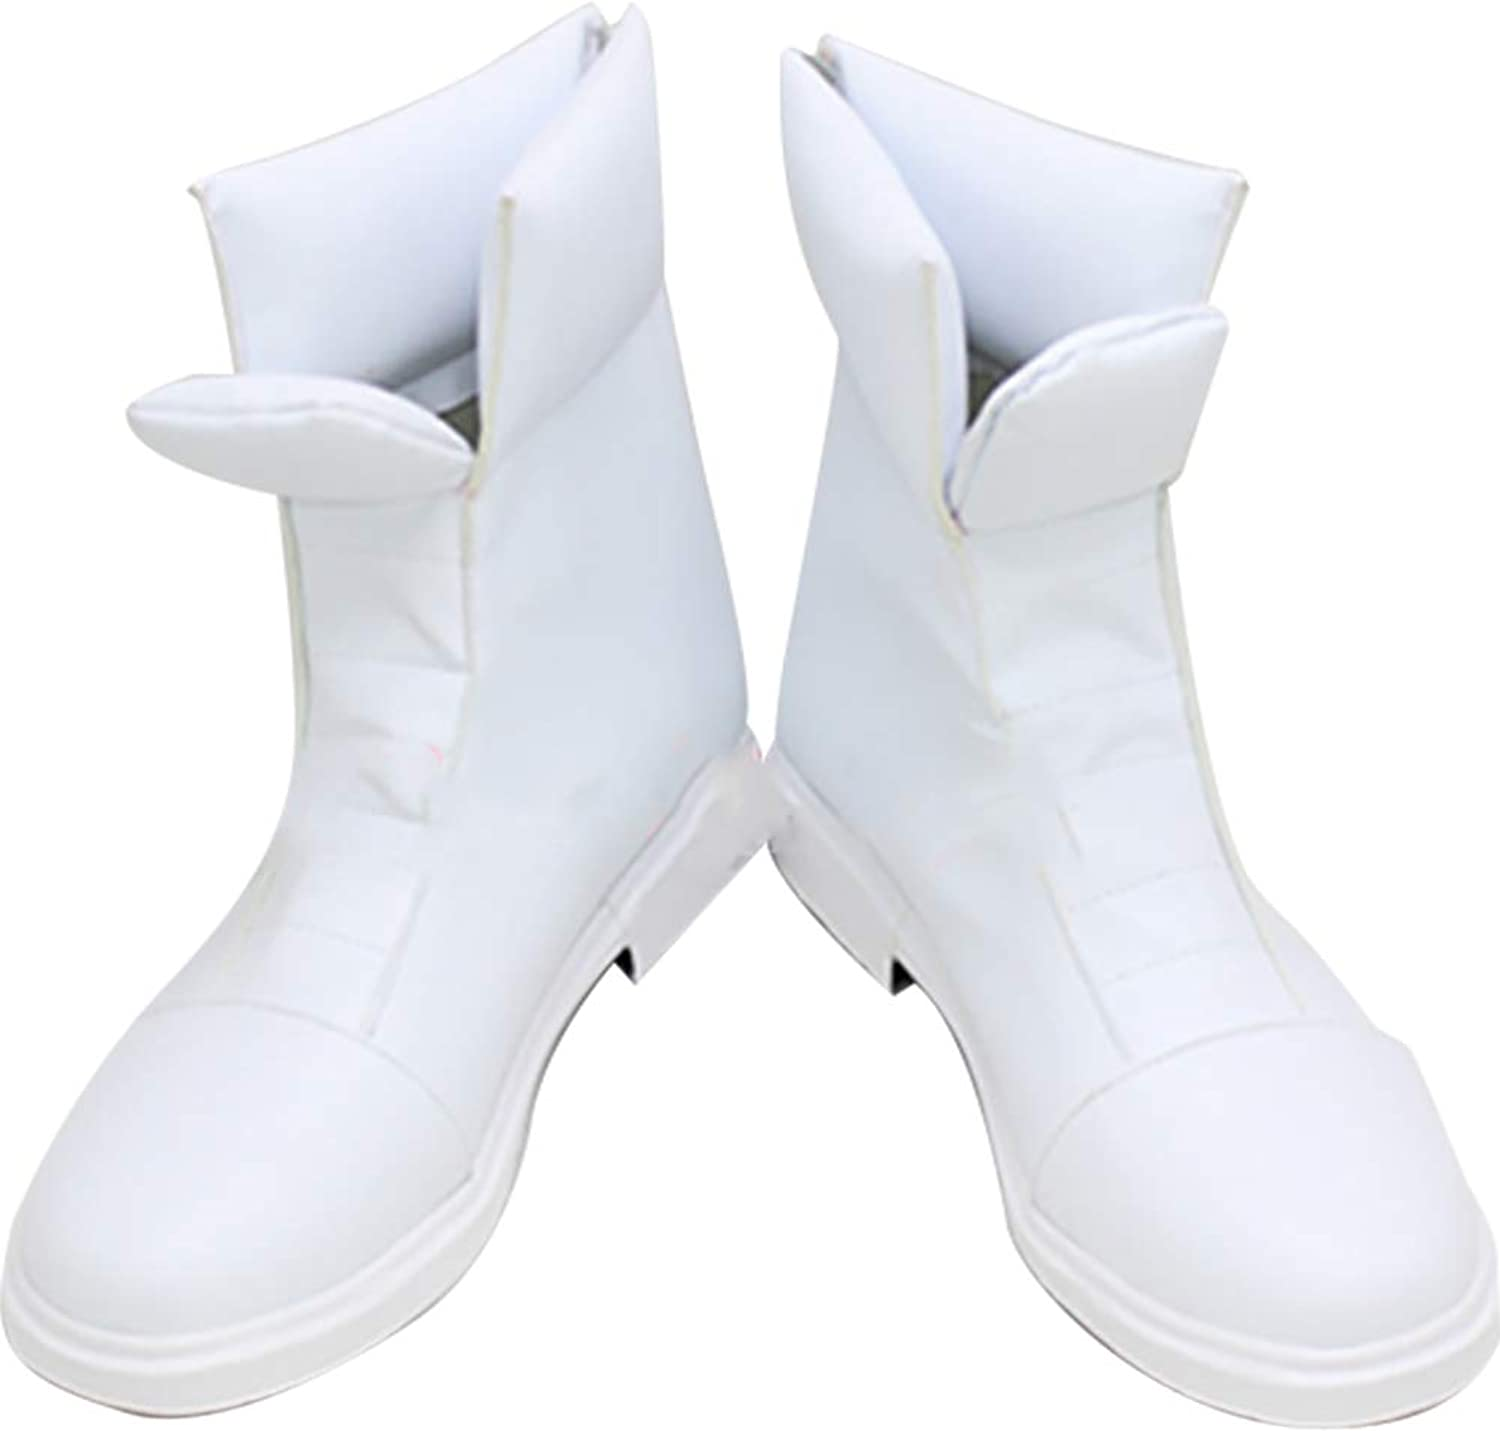 Whirl Cosplay Boots shoes for League of Legends Talon